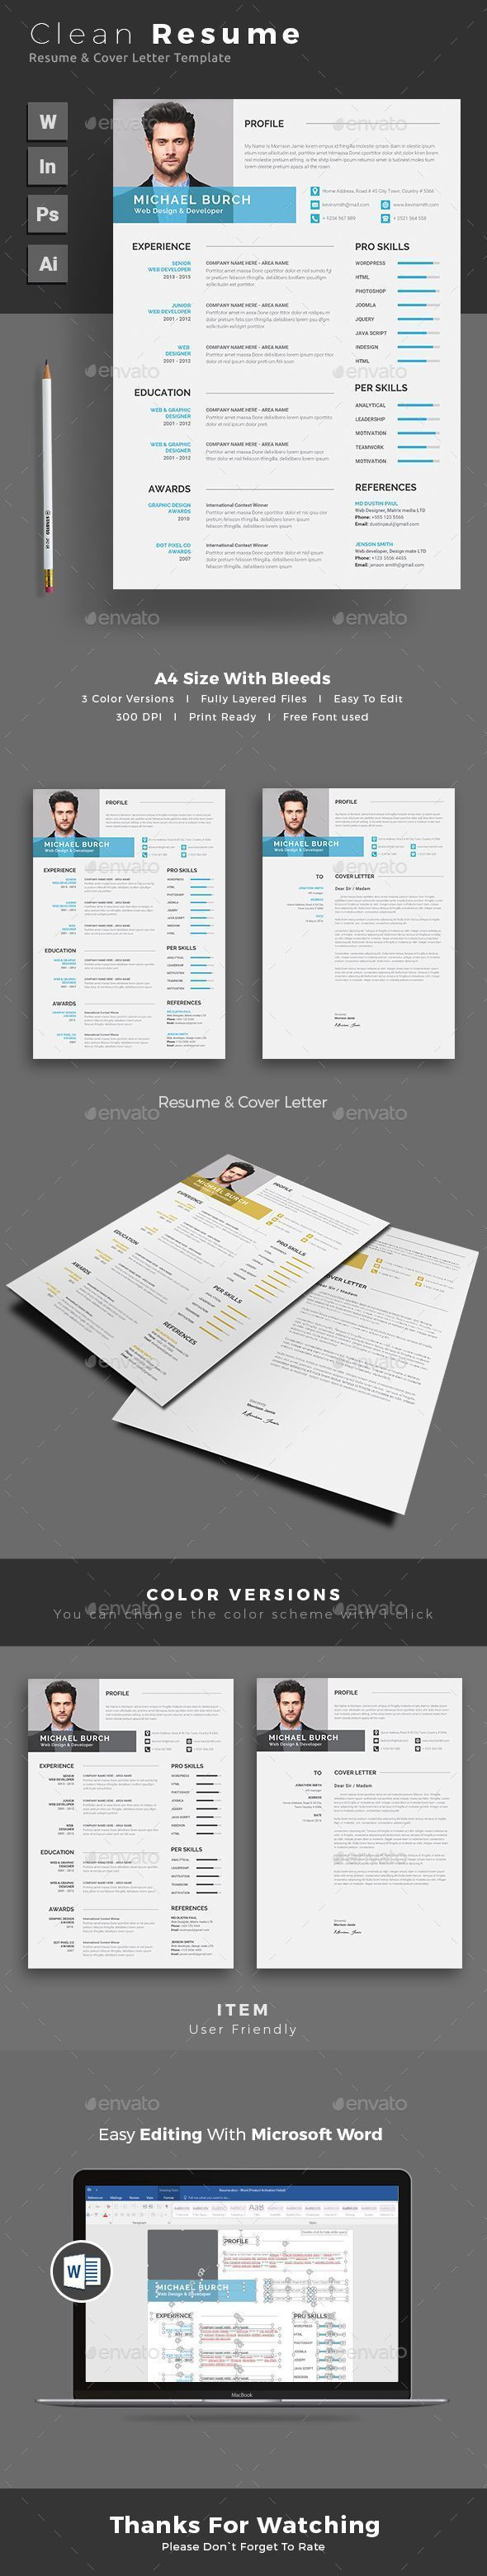 Resume Cv Templates Free Download%0A Beijing On A World Map